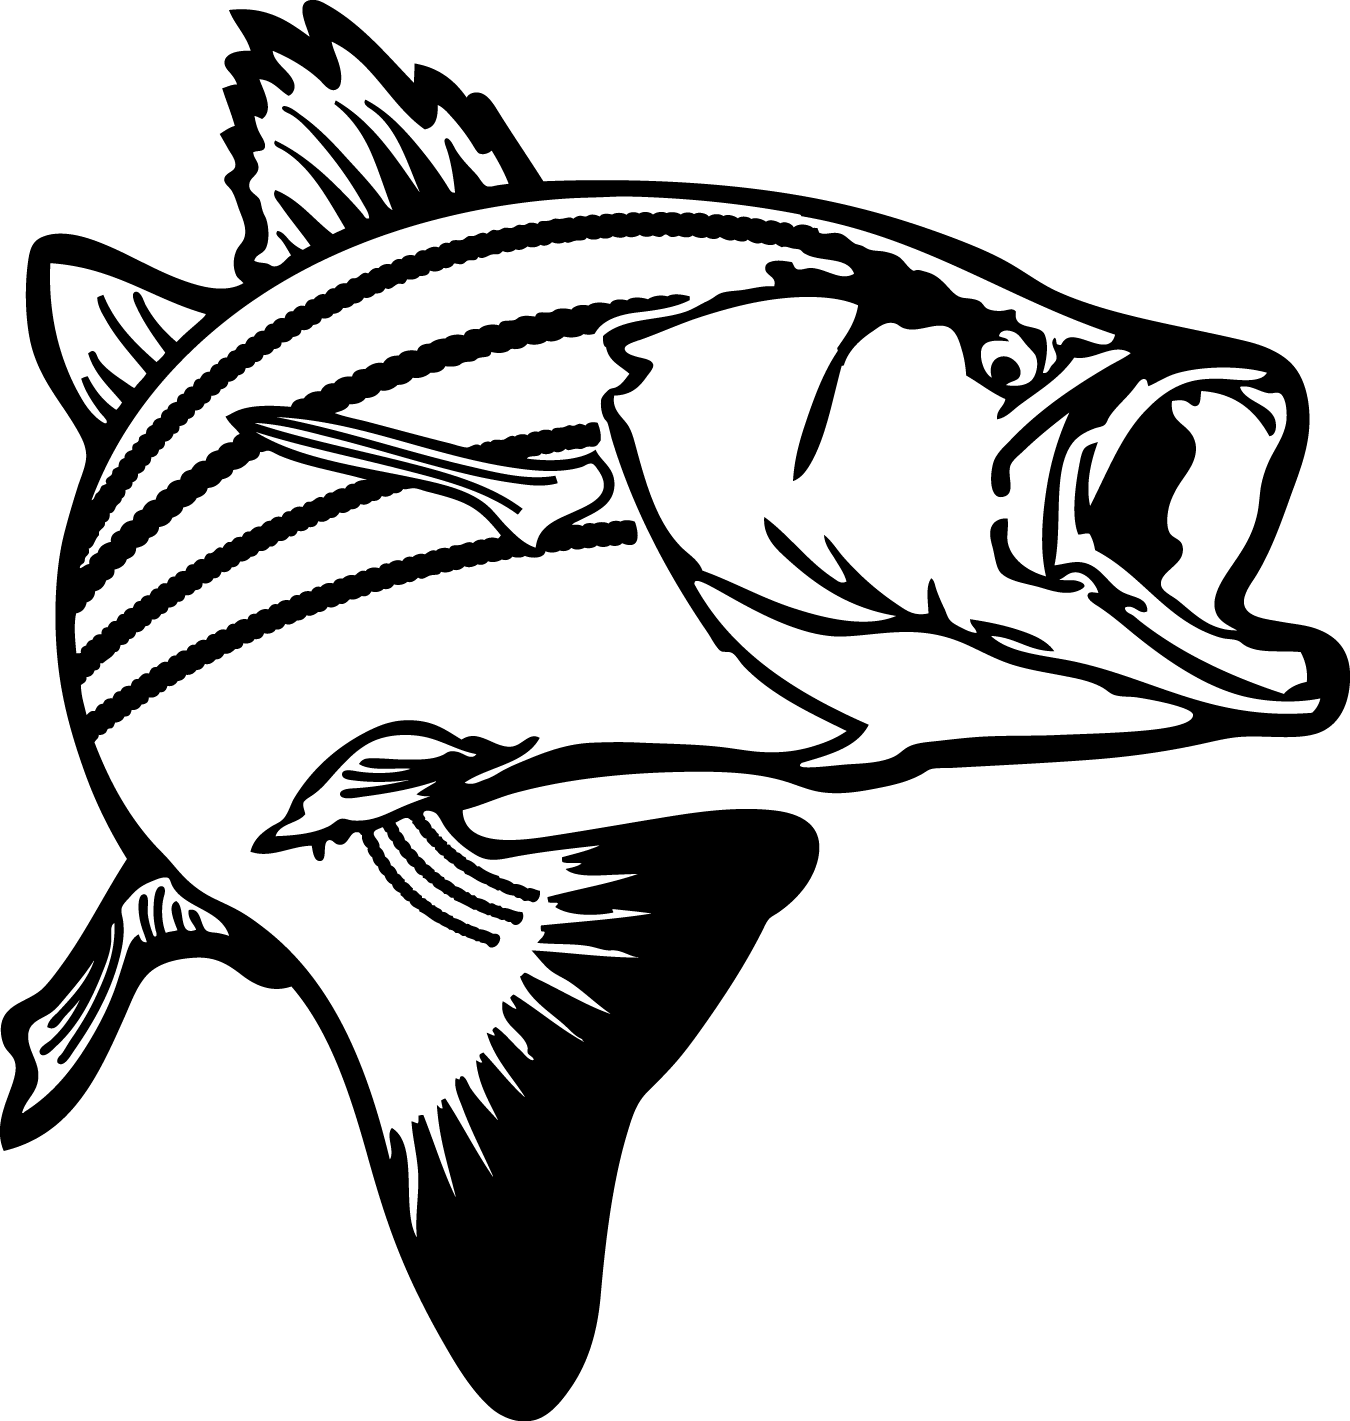 Fish Black And White Drawing At Getdrawings